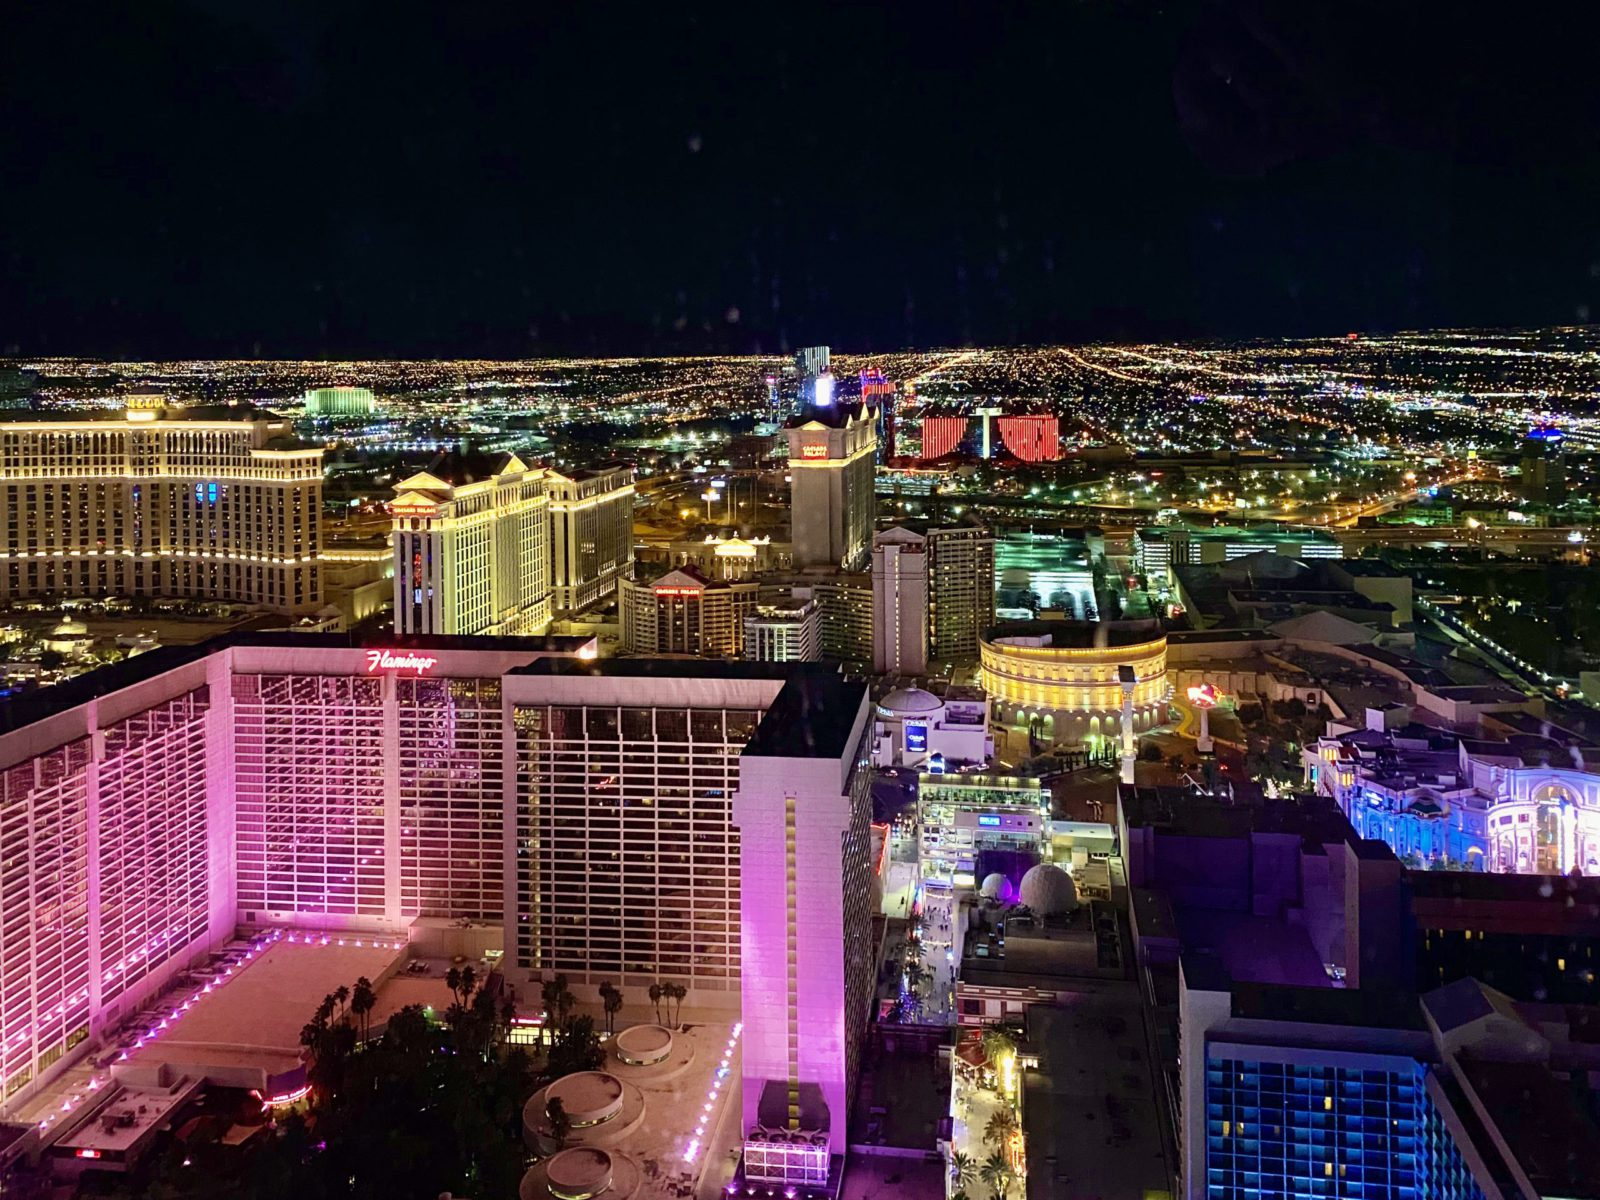 Flight Deal Round Trip From Chicago Area to Las Vegas #chicago #lasvegas #usholiday #veteransday